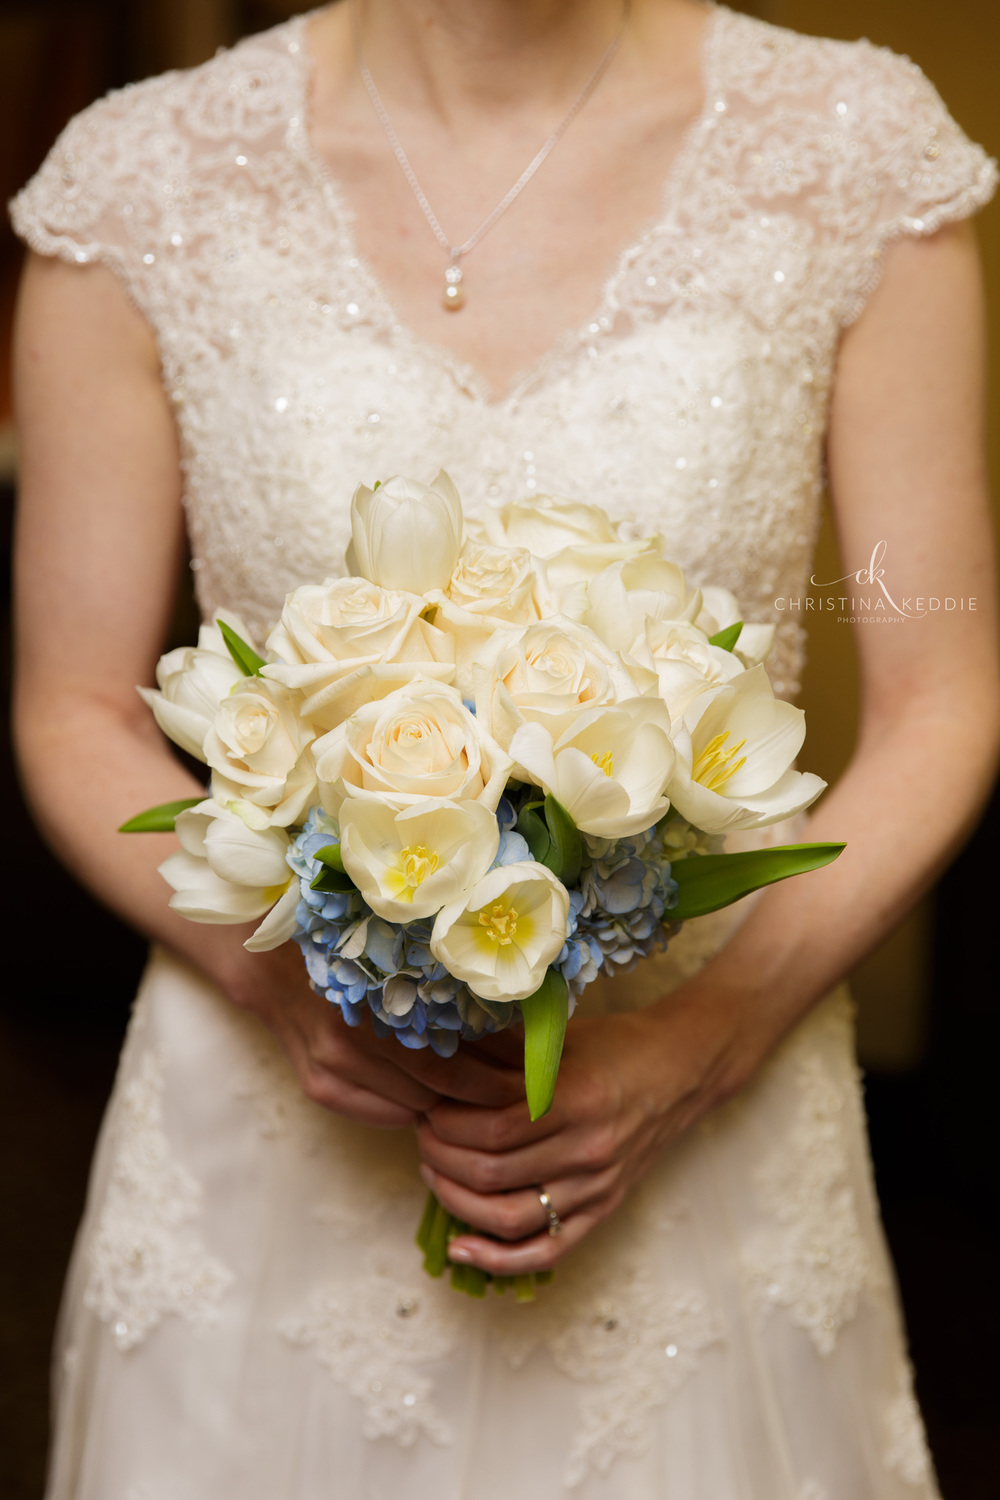 Bride holding wedding bouquet | Christina Keddie Photography | Princeton NJ wedding photographer